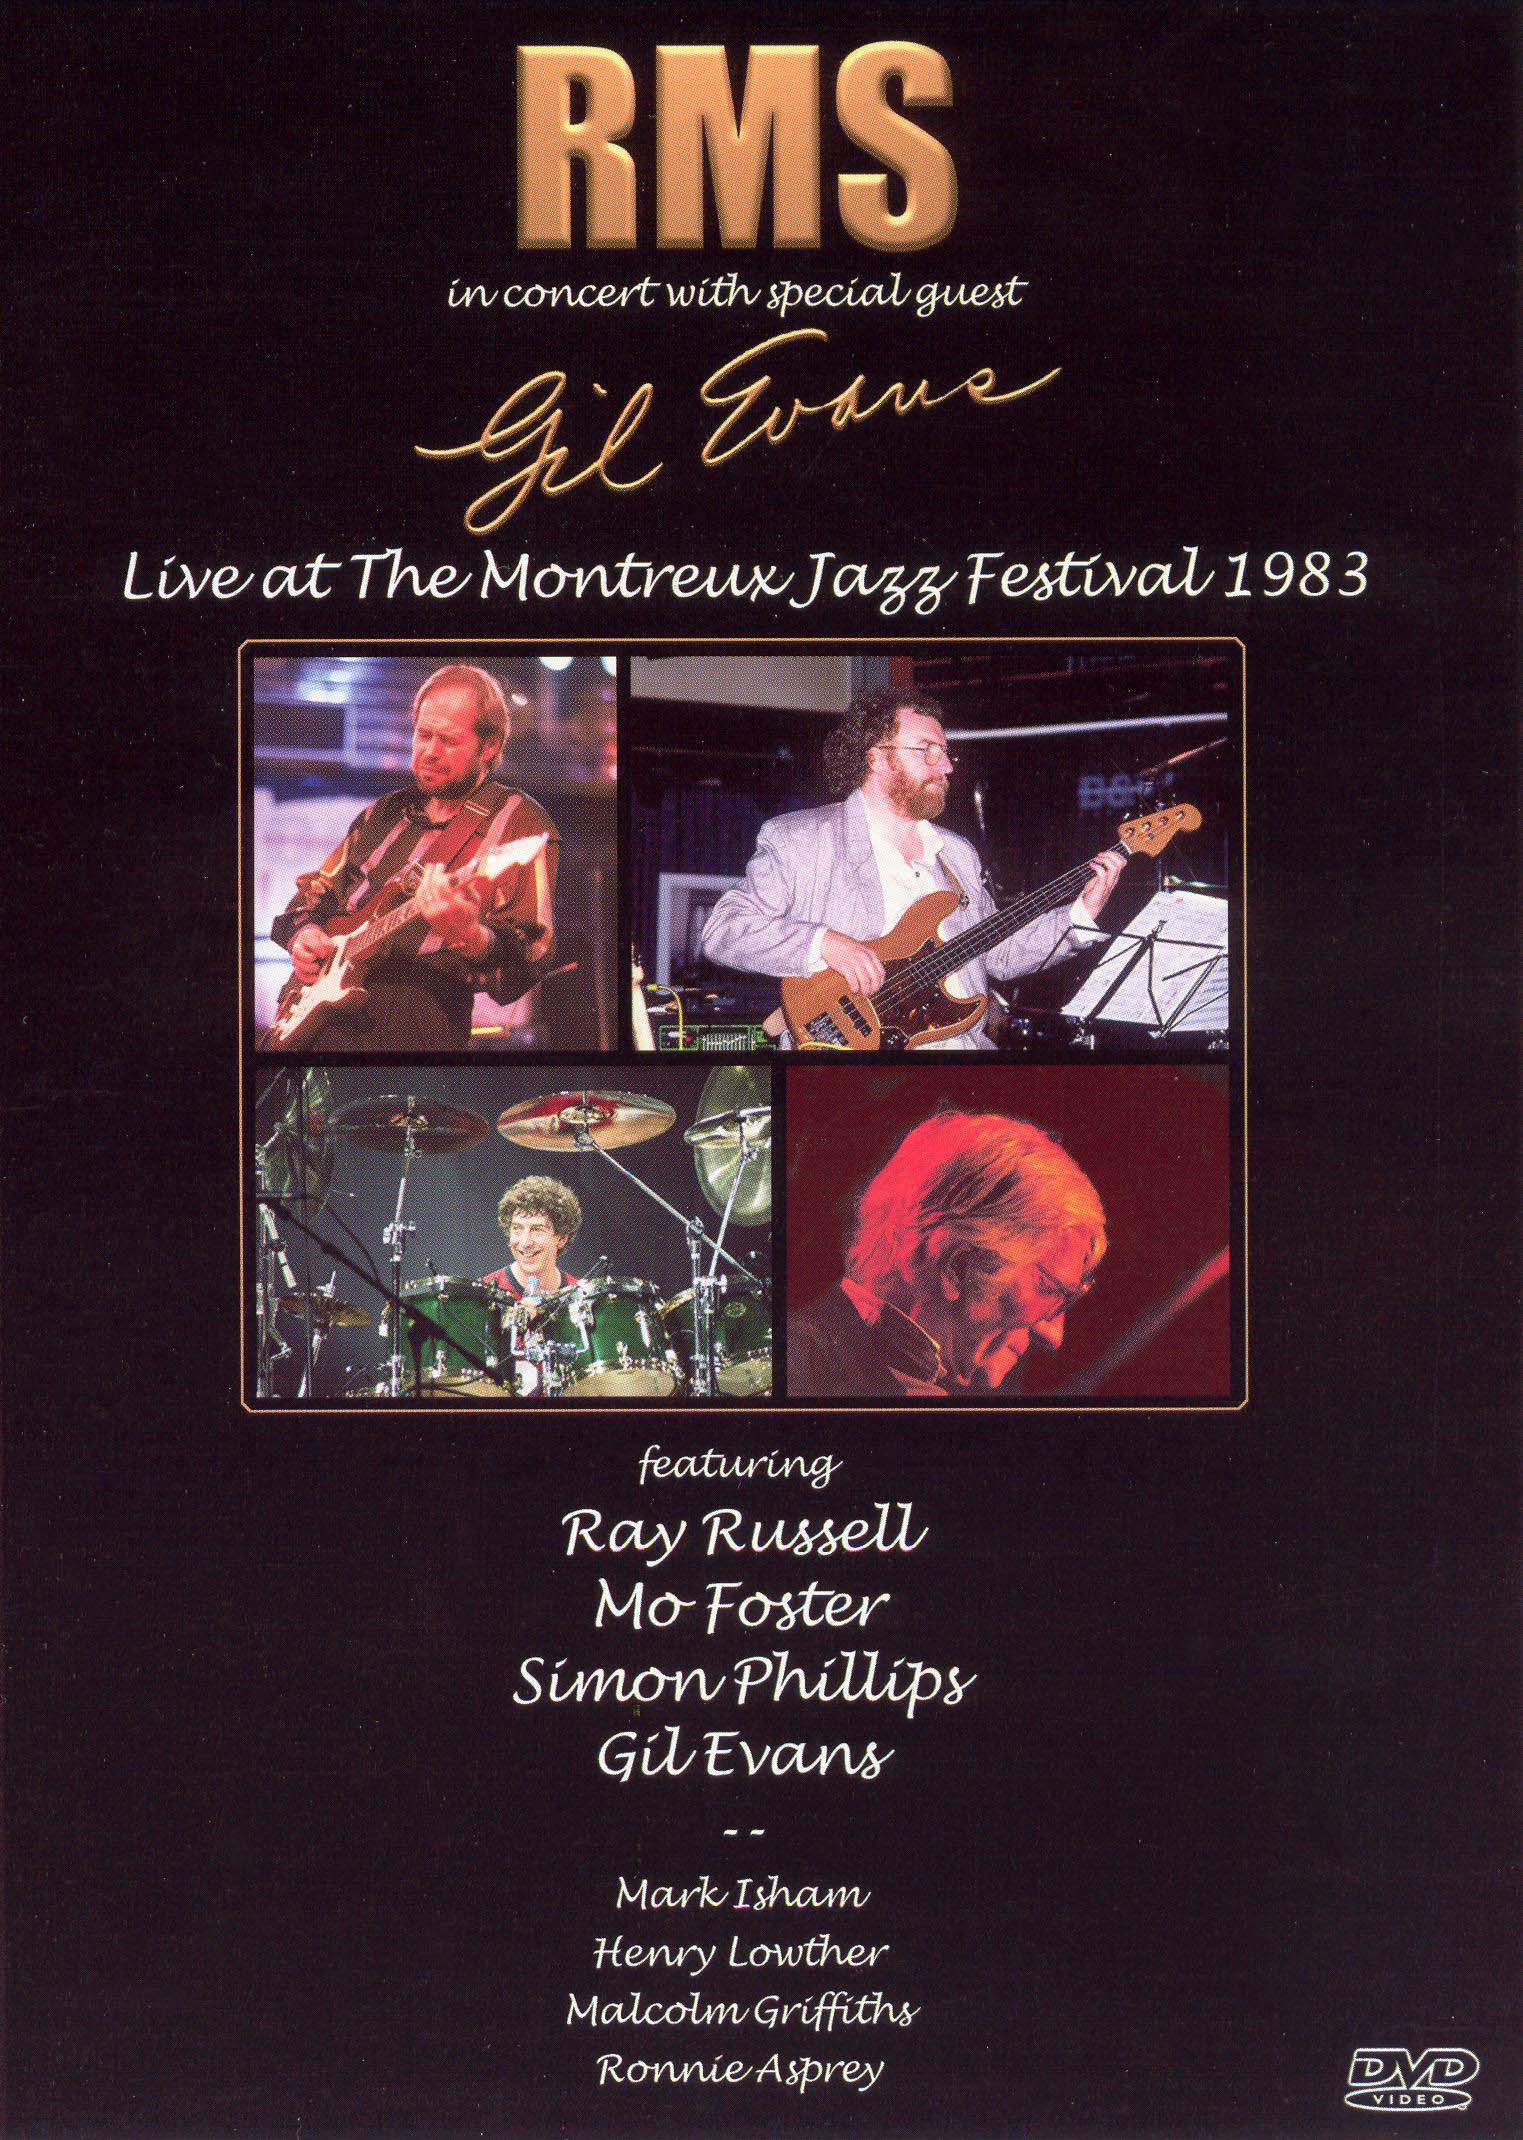 RMS in Concert with Special Guest Gil Evans: Live at the Montreux Jazz Festival 1983